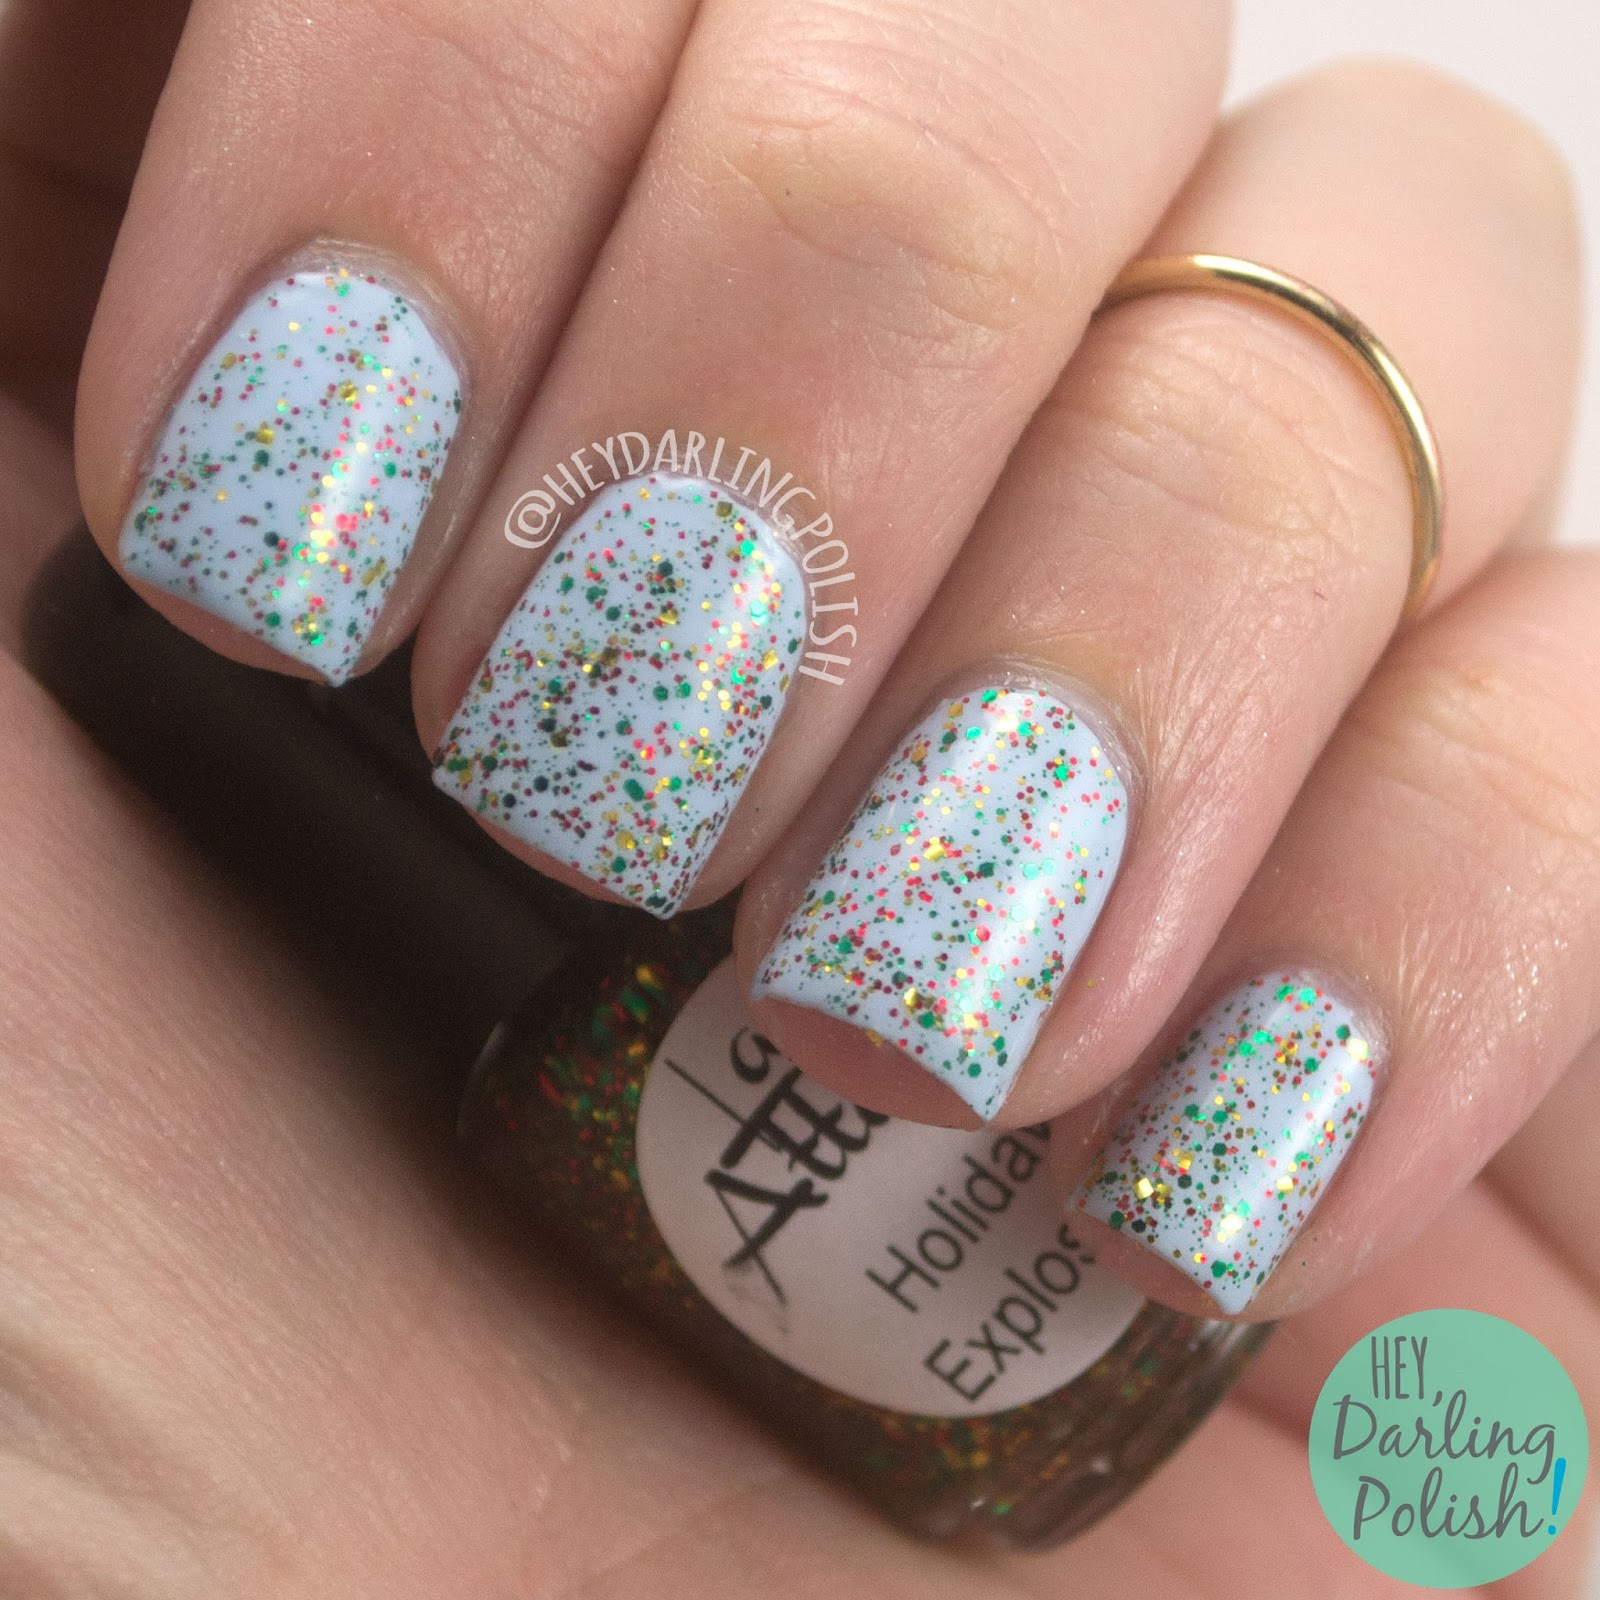 holiday explosion, blue, glitter, red, green, gold, holiday, nails, nail polish, indie nail polish, indie polish, lac attack, festivus collection, christmas, holiday, hey darling polish, swatch, review